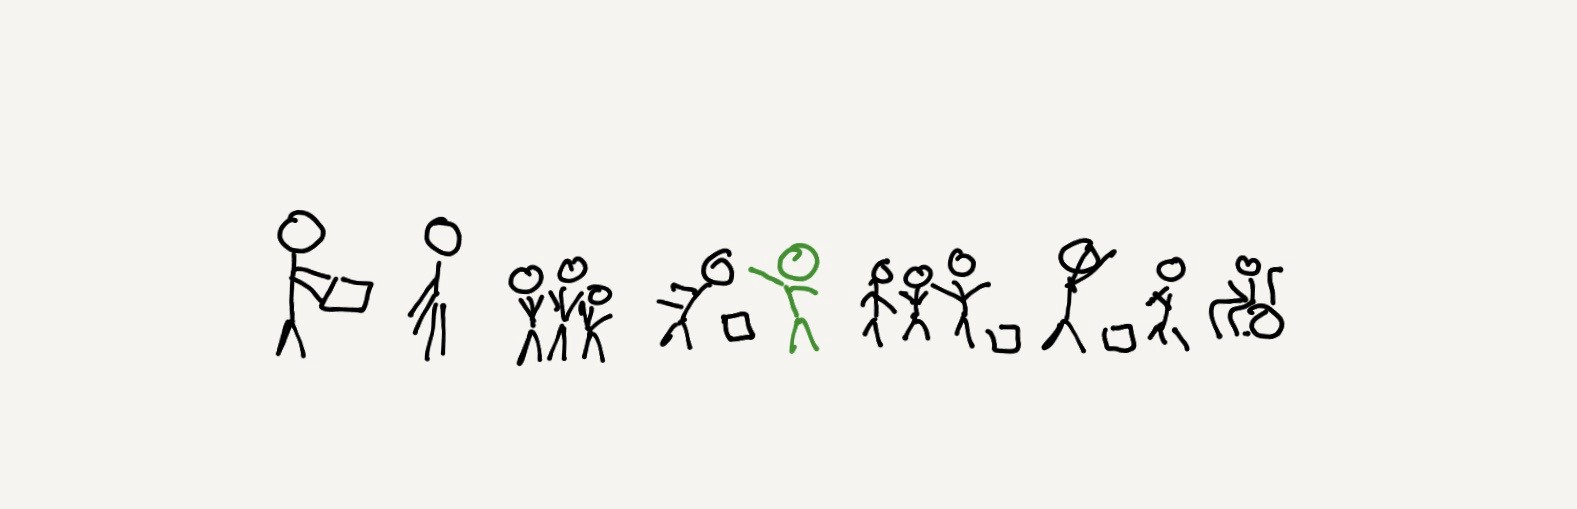 A group of stick figures collaborating in various ways, with a green stick figure in the middle (the designer) participating.